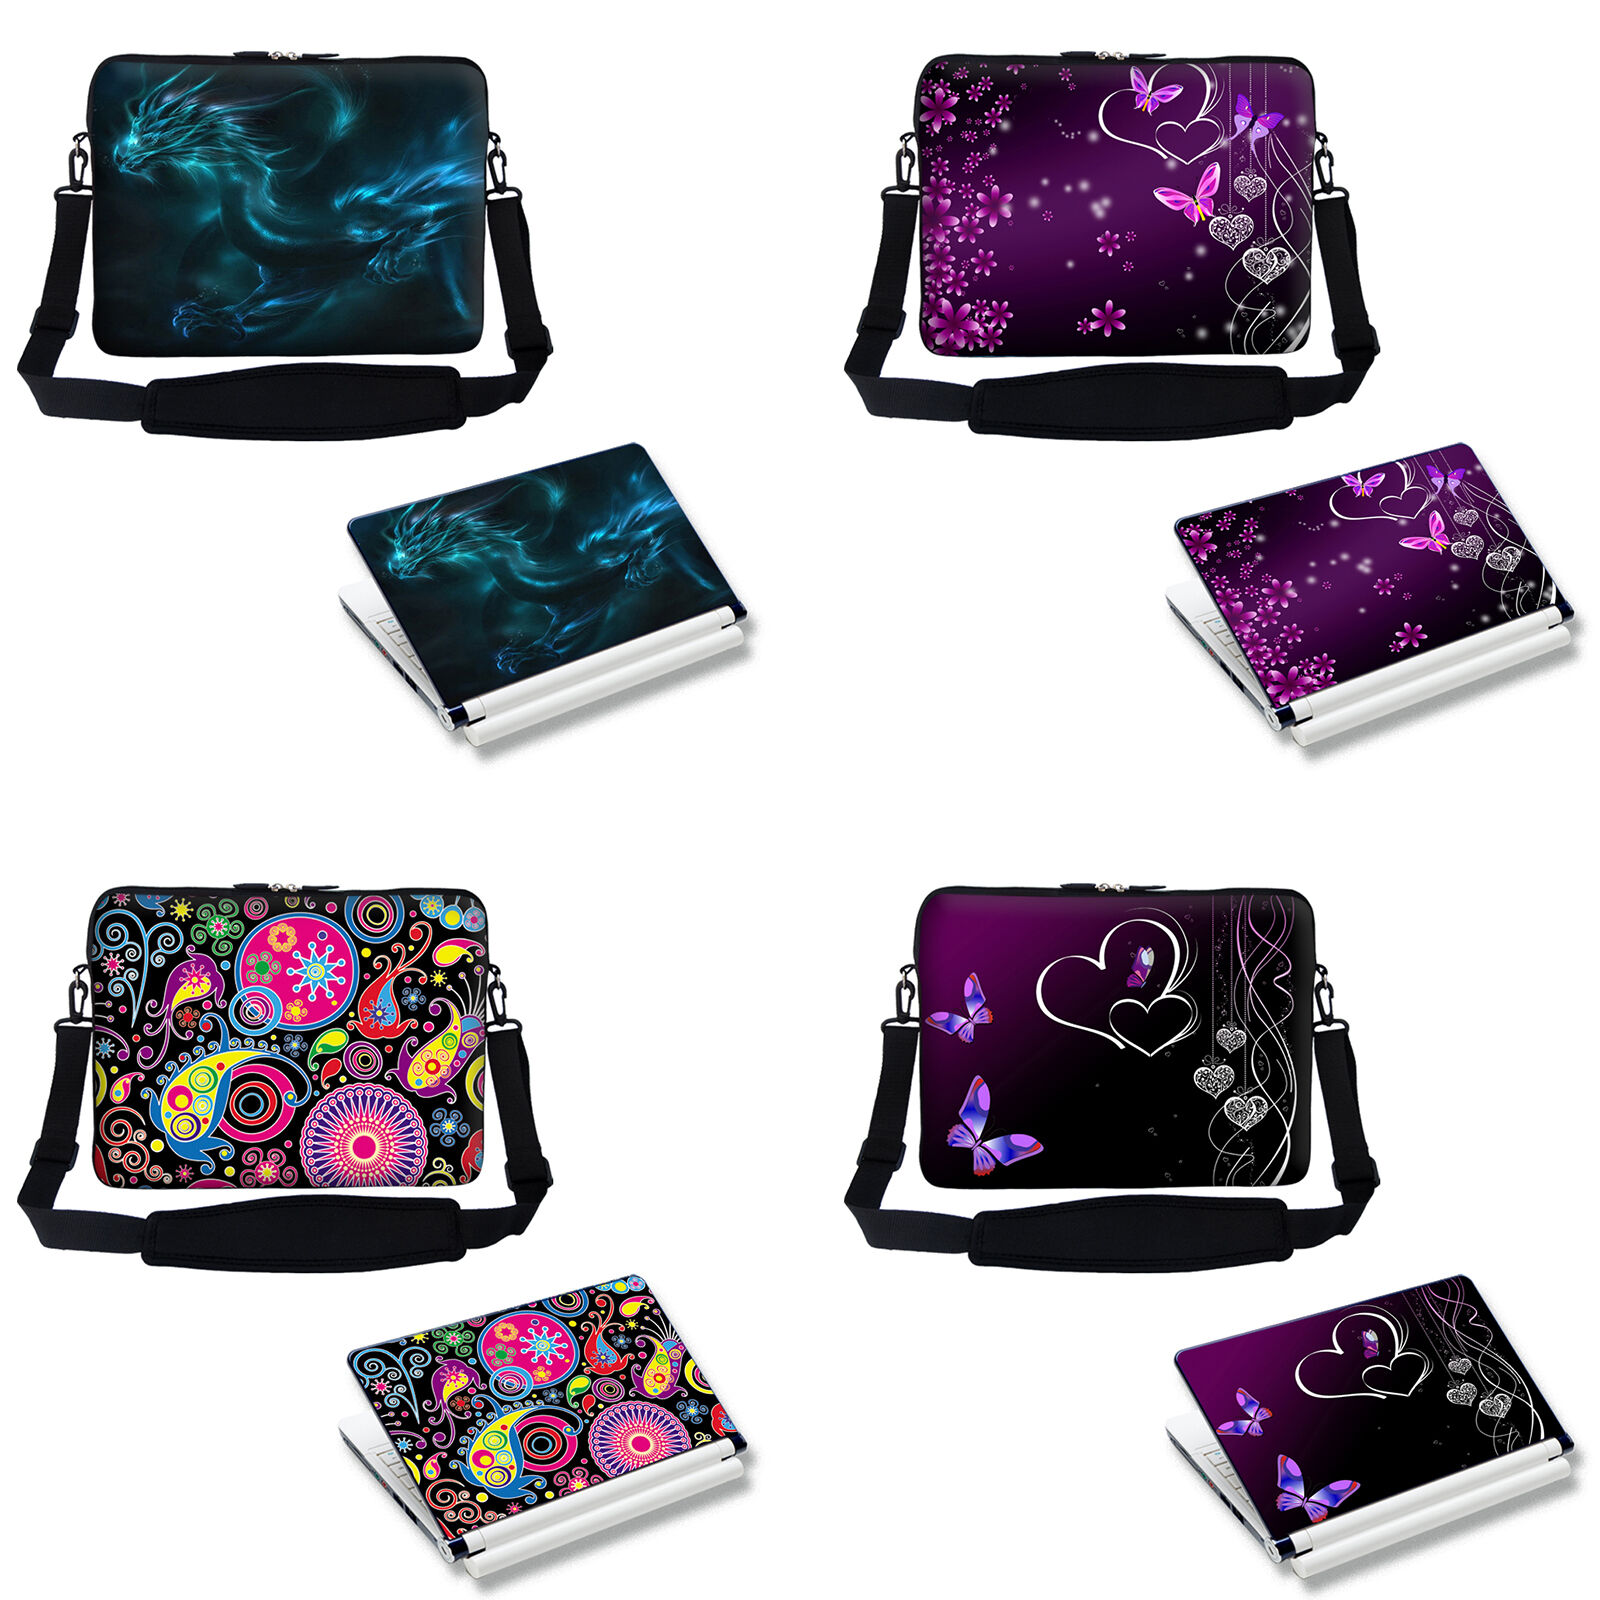 Colorful Design Laptop Notebook Sleeve Bag & Matching Skin S